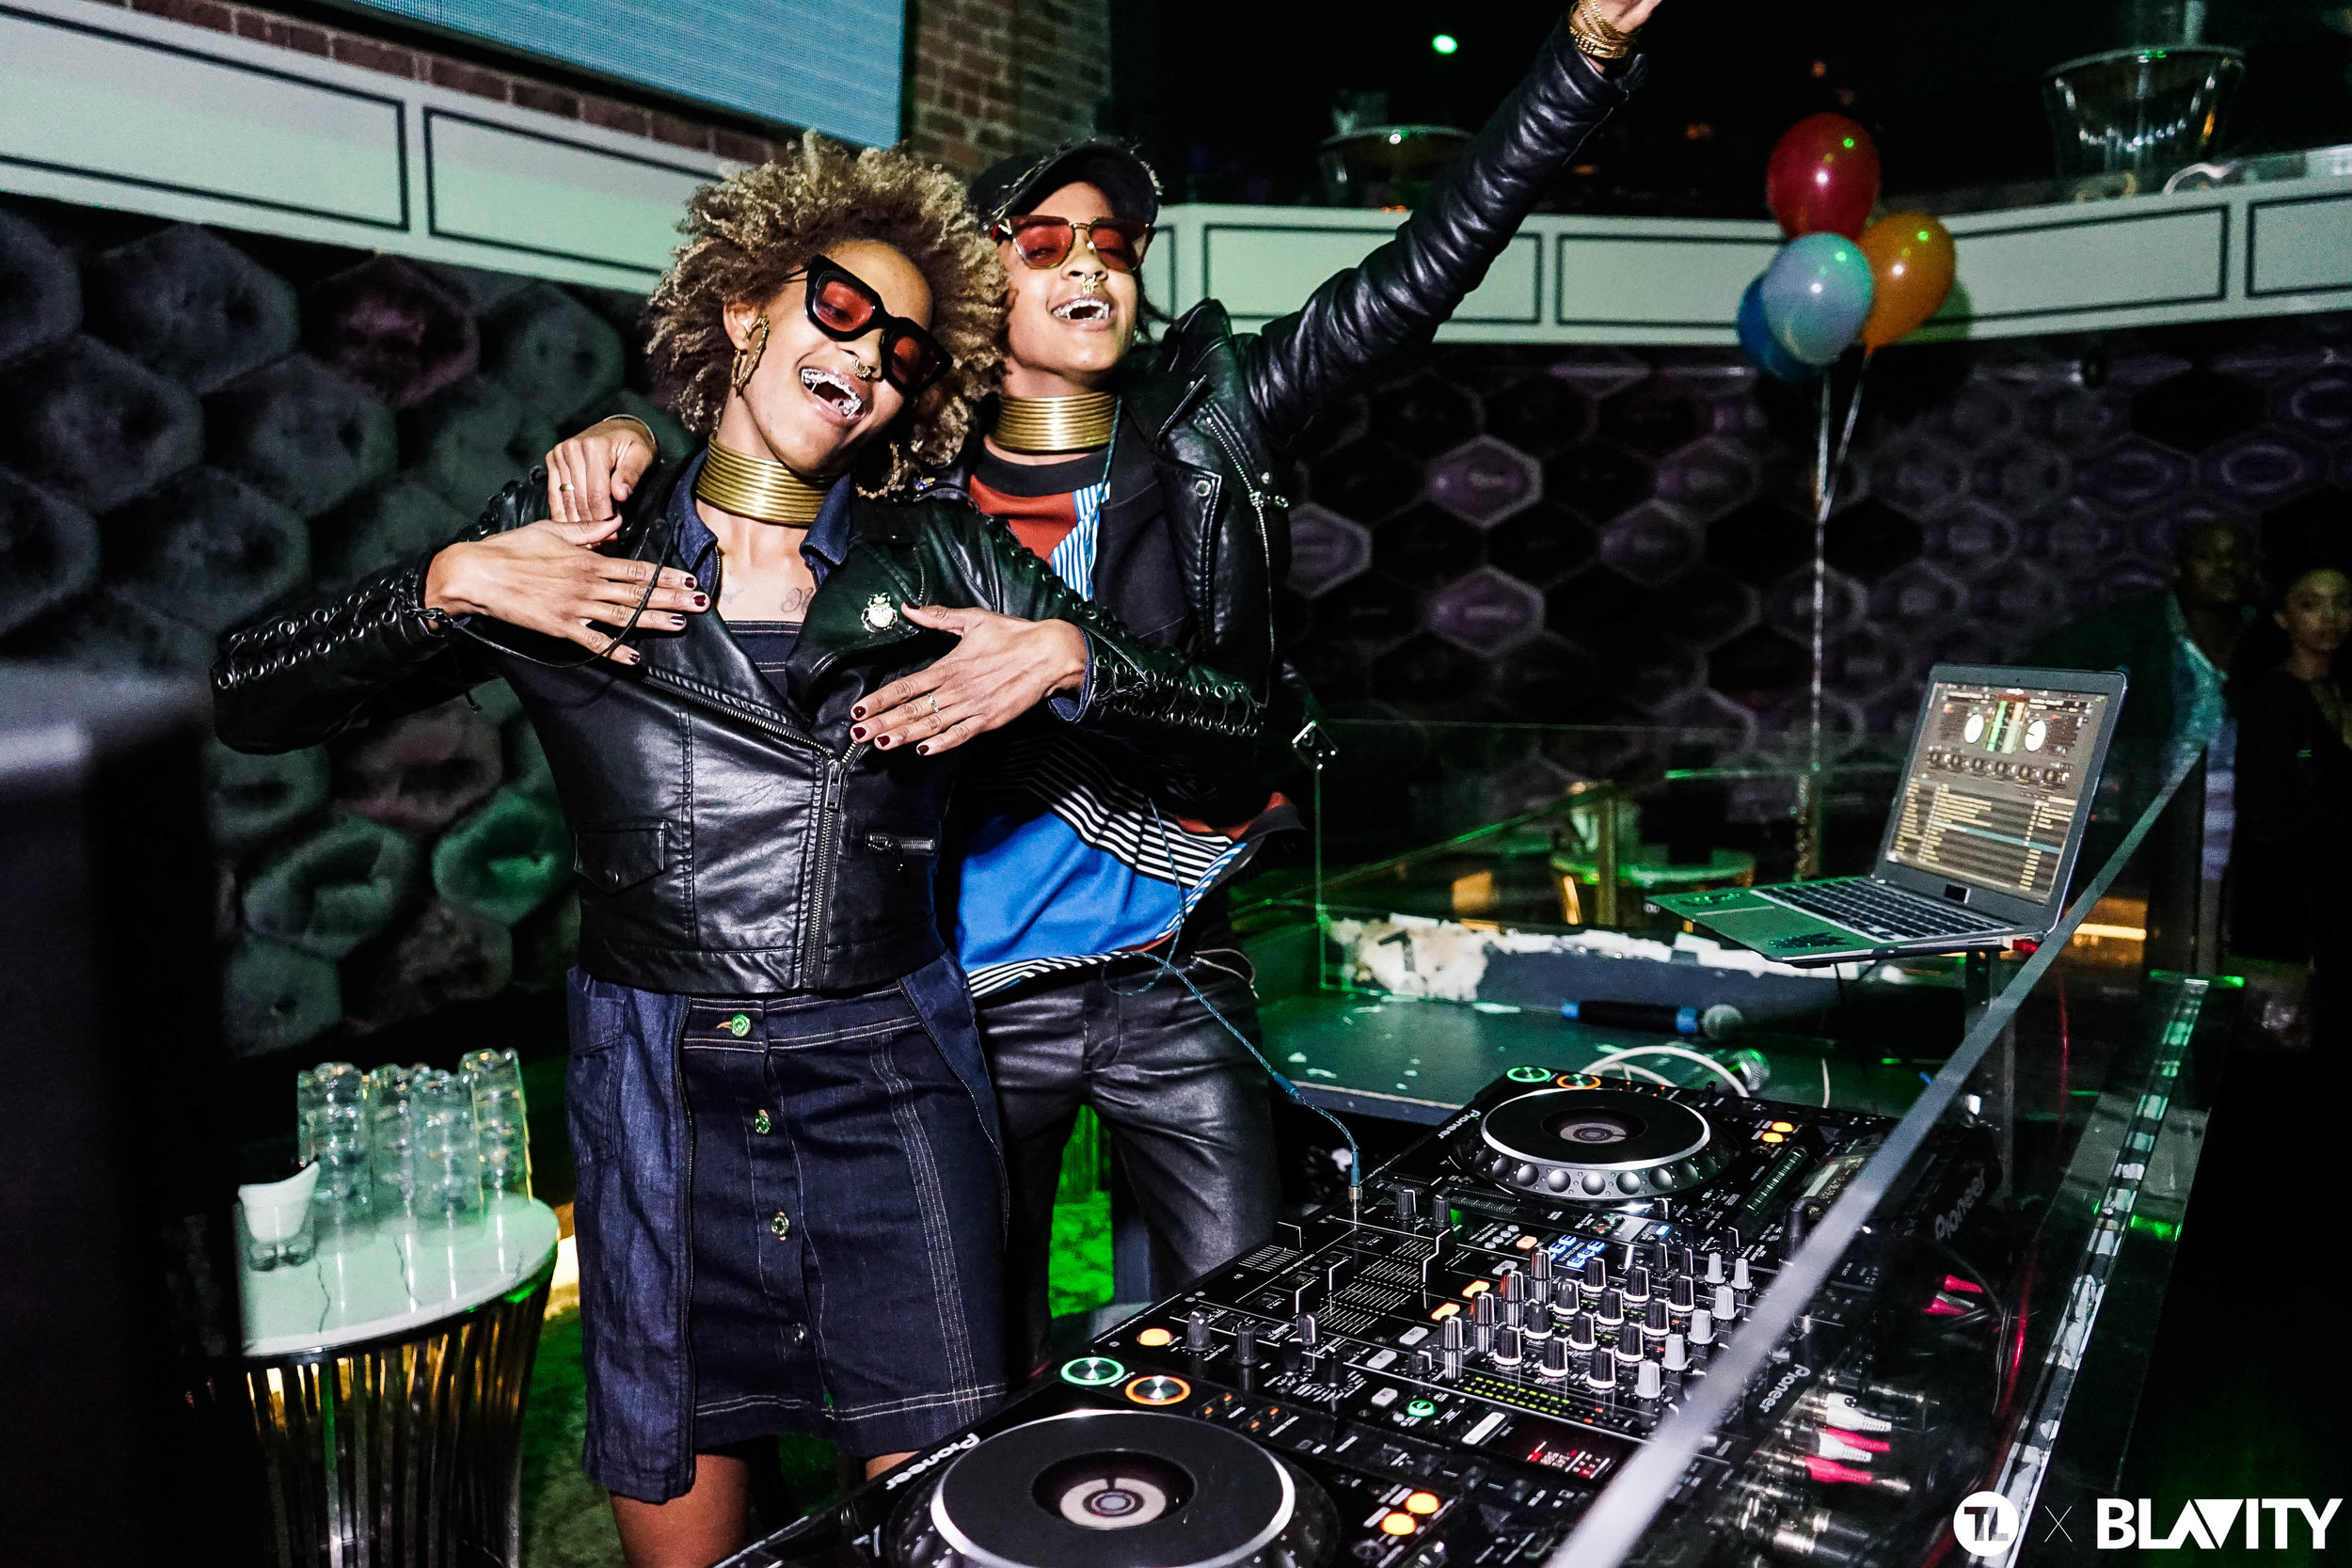 Twin DJ duo Coco & Breezy light it up at the AfroTech Conference afterparty